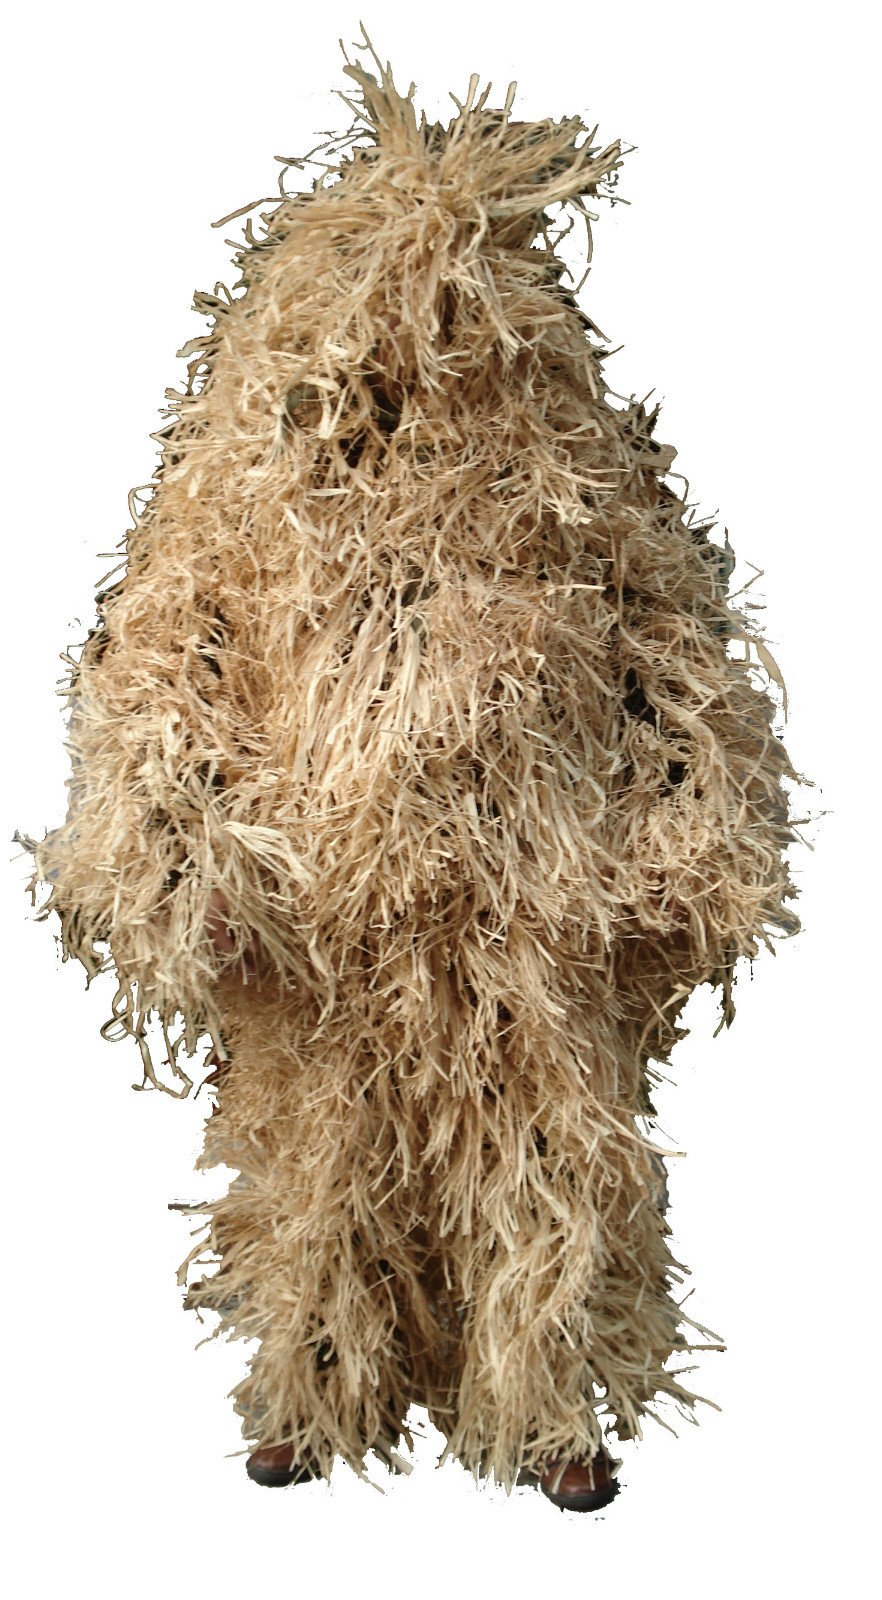 Straw Ghillie Suit, extra light, waist size 29-41'' (74-104 cm) by shop1234 (Image #1)